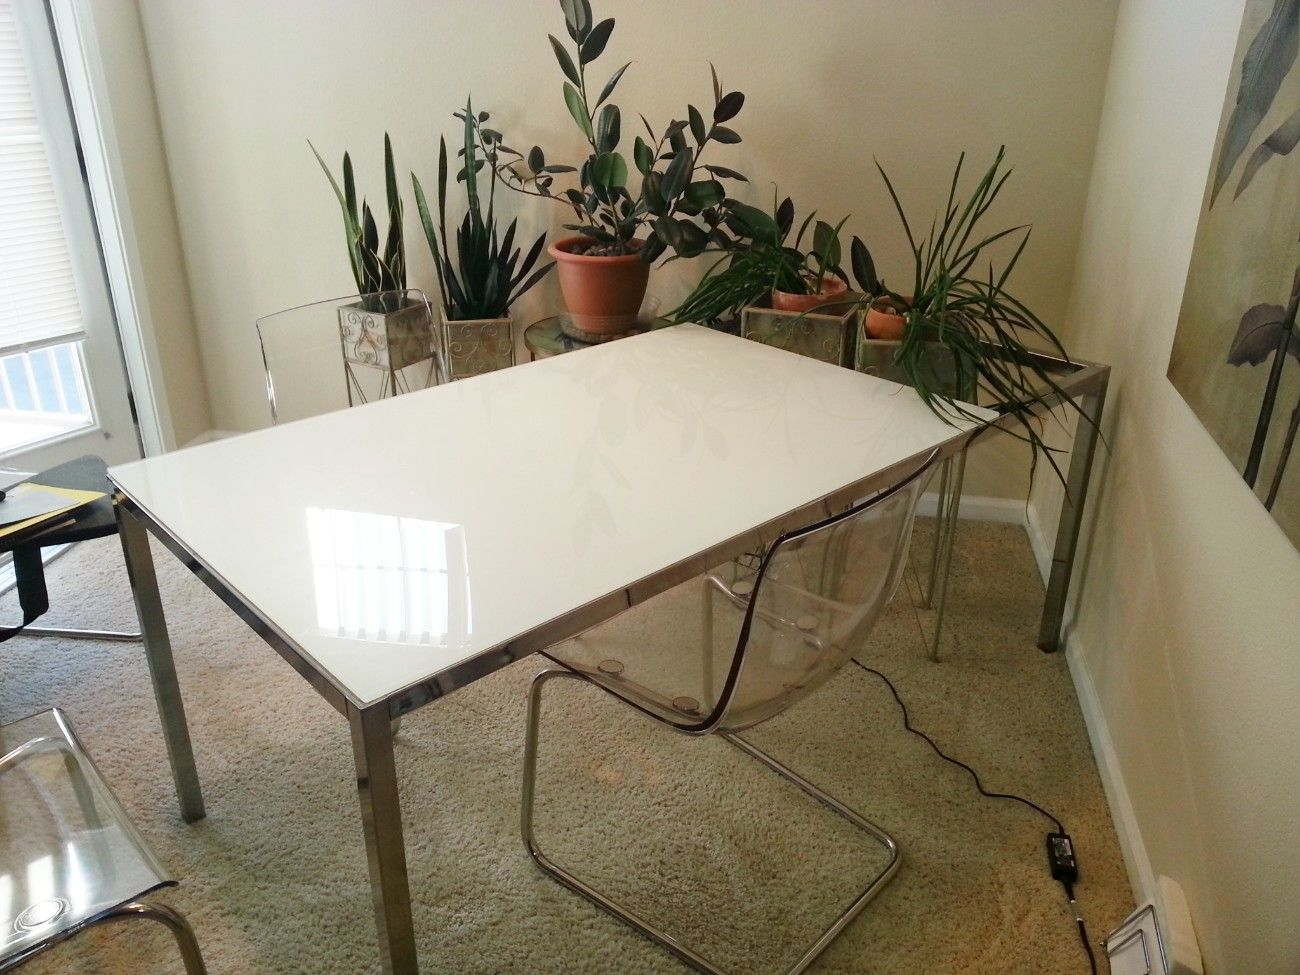 Santa clarita ikea torsby glass top dining table 299 for Ikea glass table tops